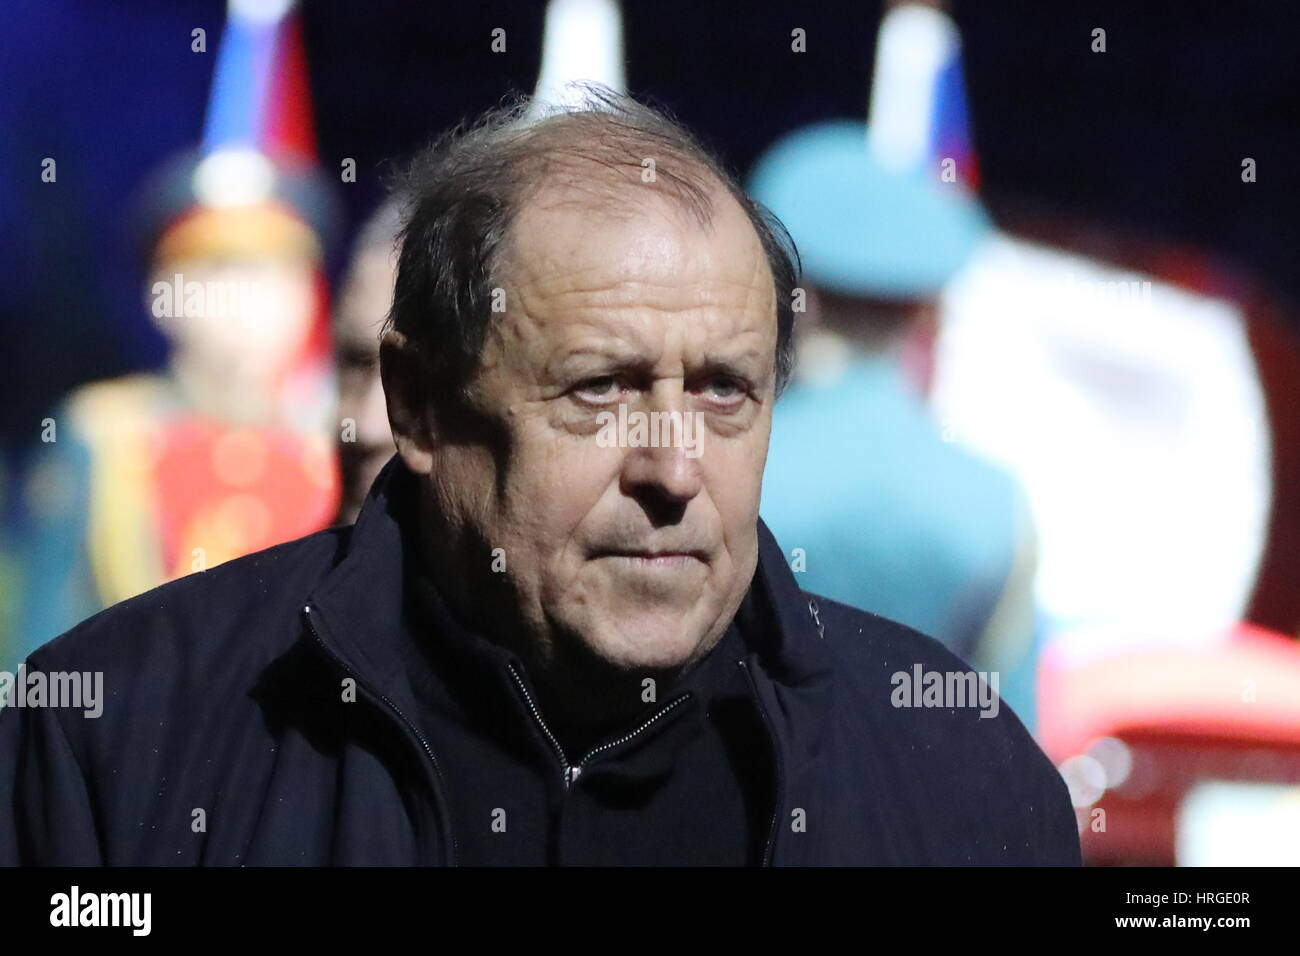 Moscow, Russia. 2nd Mar, 2017. Mikhail Gershkovich, head of the Russian Football Coaches Union, pays last respects - Stock Image